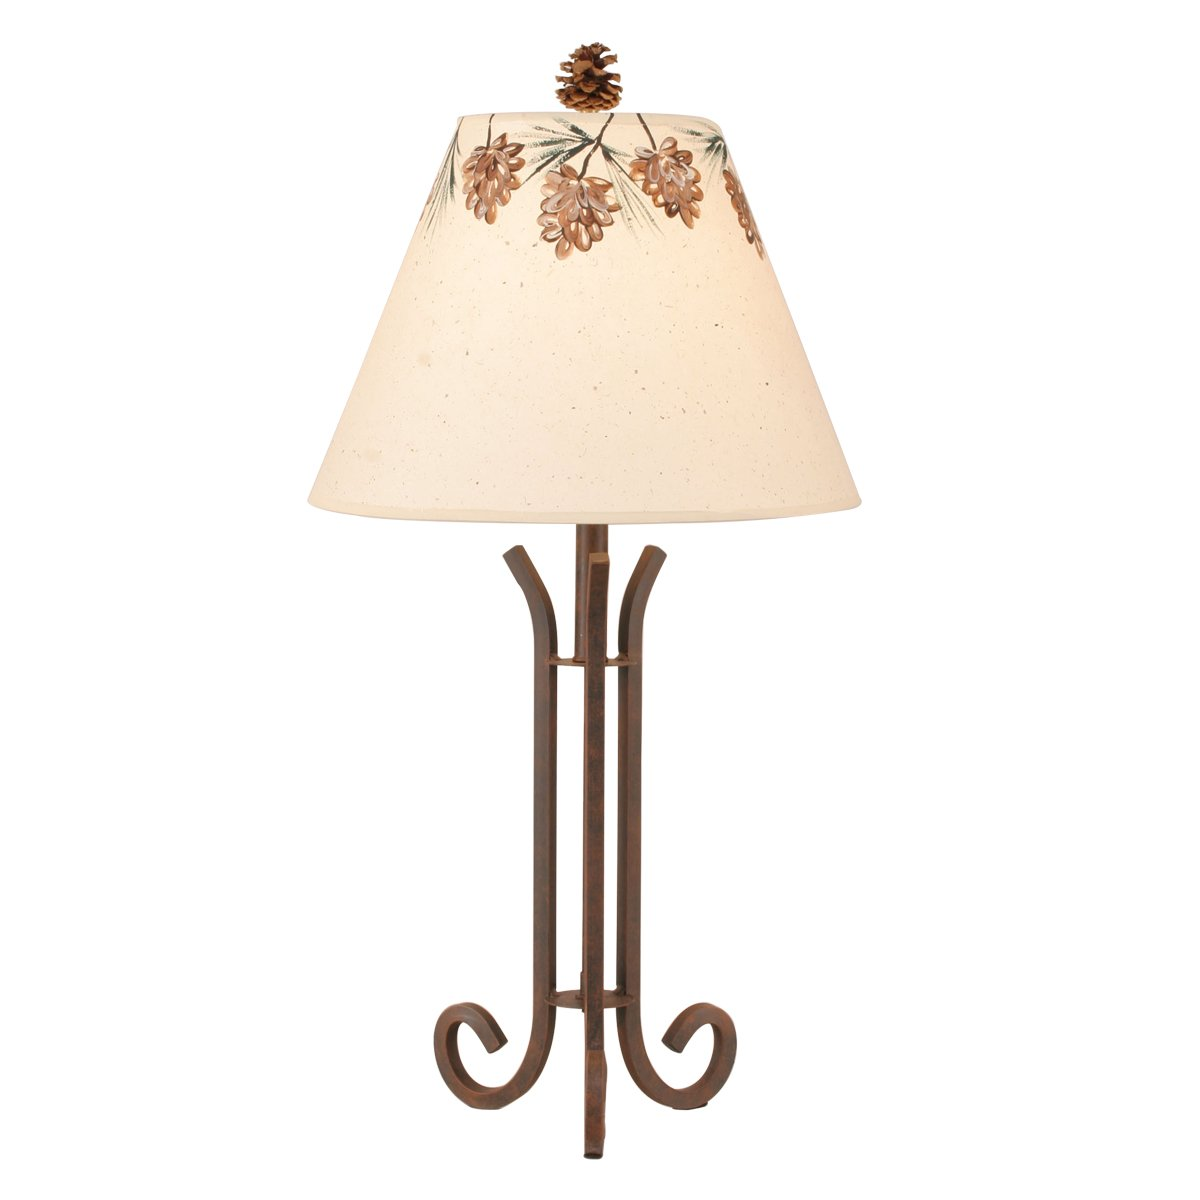 Rusted Steel 3 Rod Accent Lamp with Pine Cone Shade